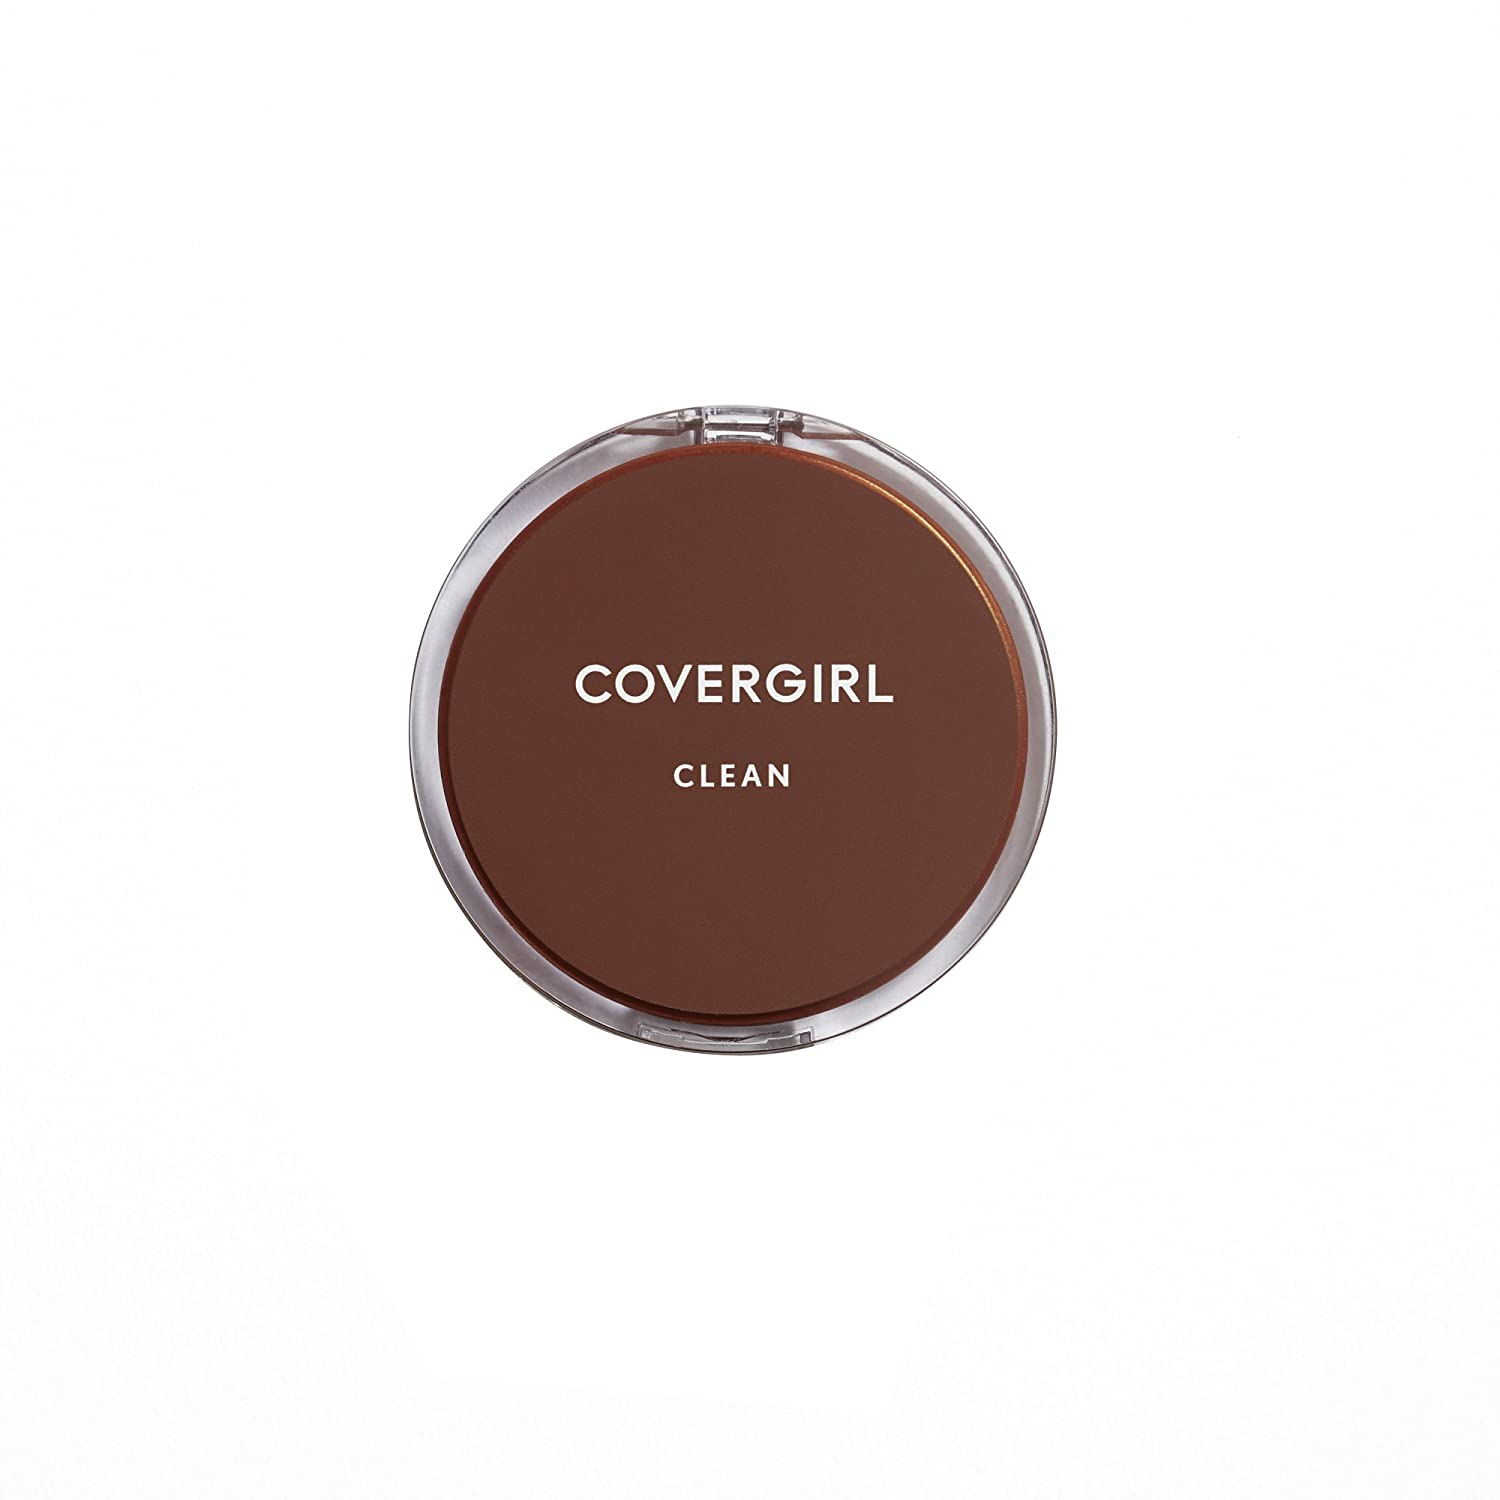 COVERGIRL Clean Pressed Powder Foundation Buff Beige, .39 oz (packaging may vary) CGRMQ2211